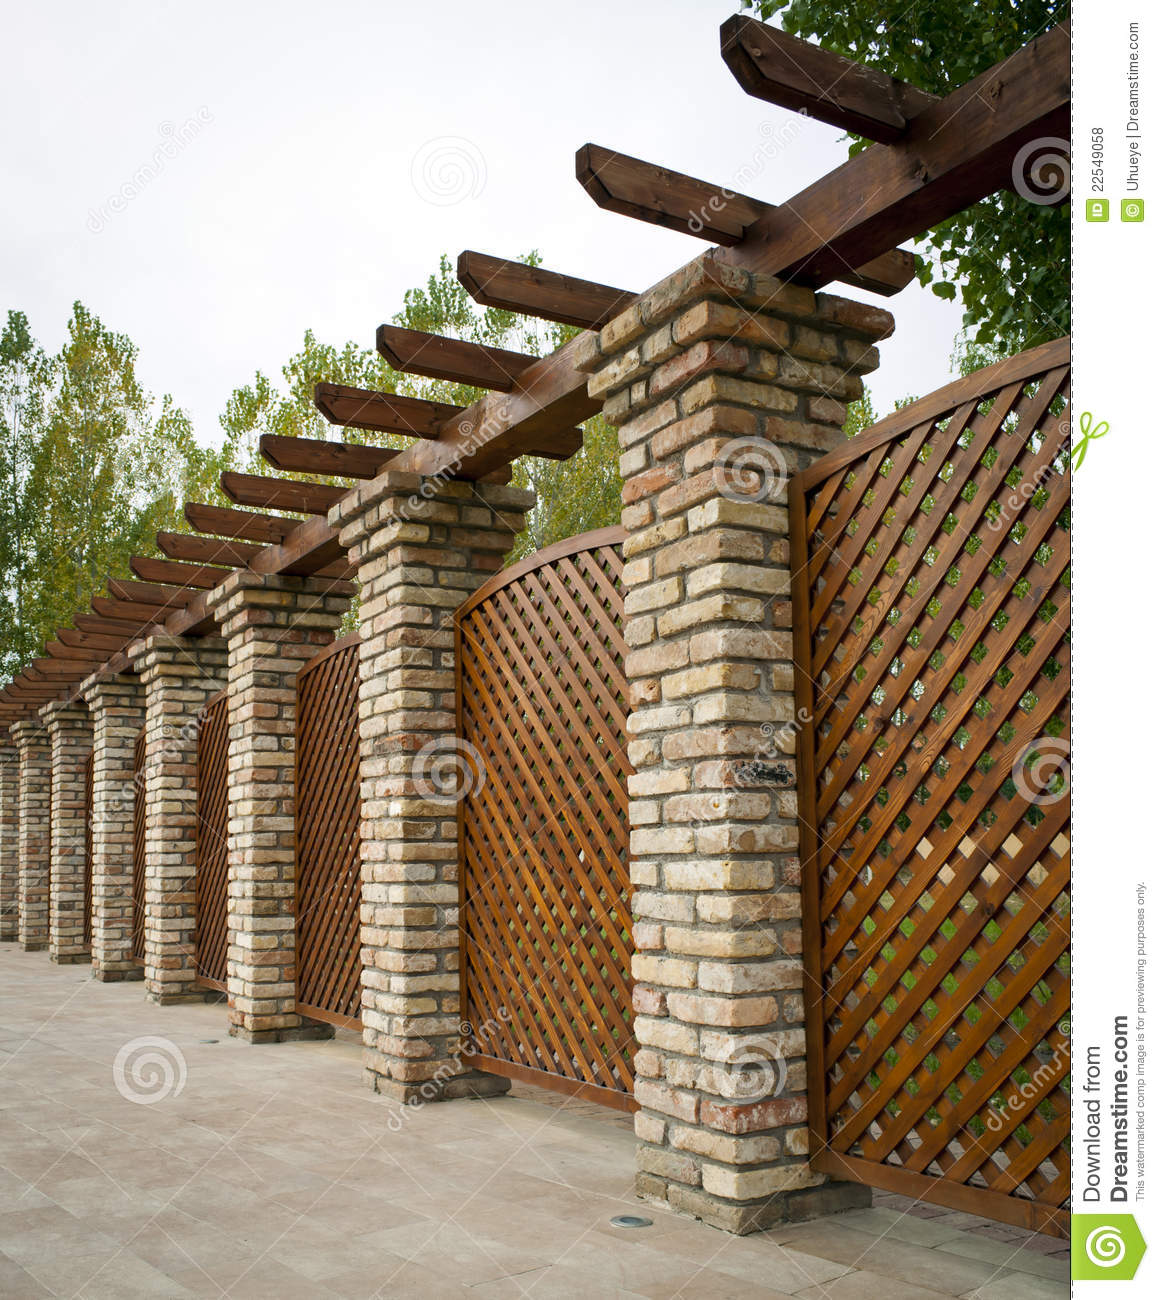 Nice Apartments Near Me: Nice Fence Near The New Apartments Royalty Free Stock